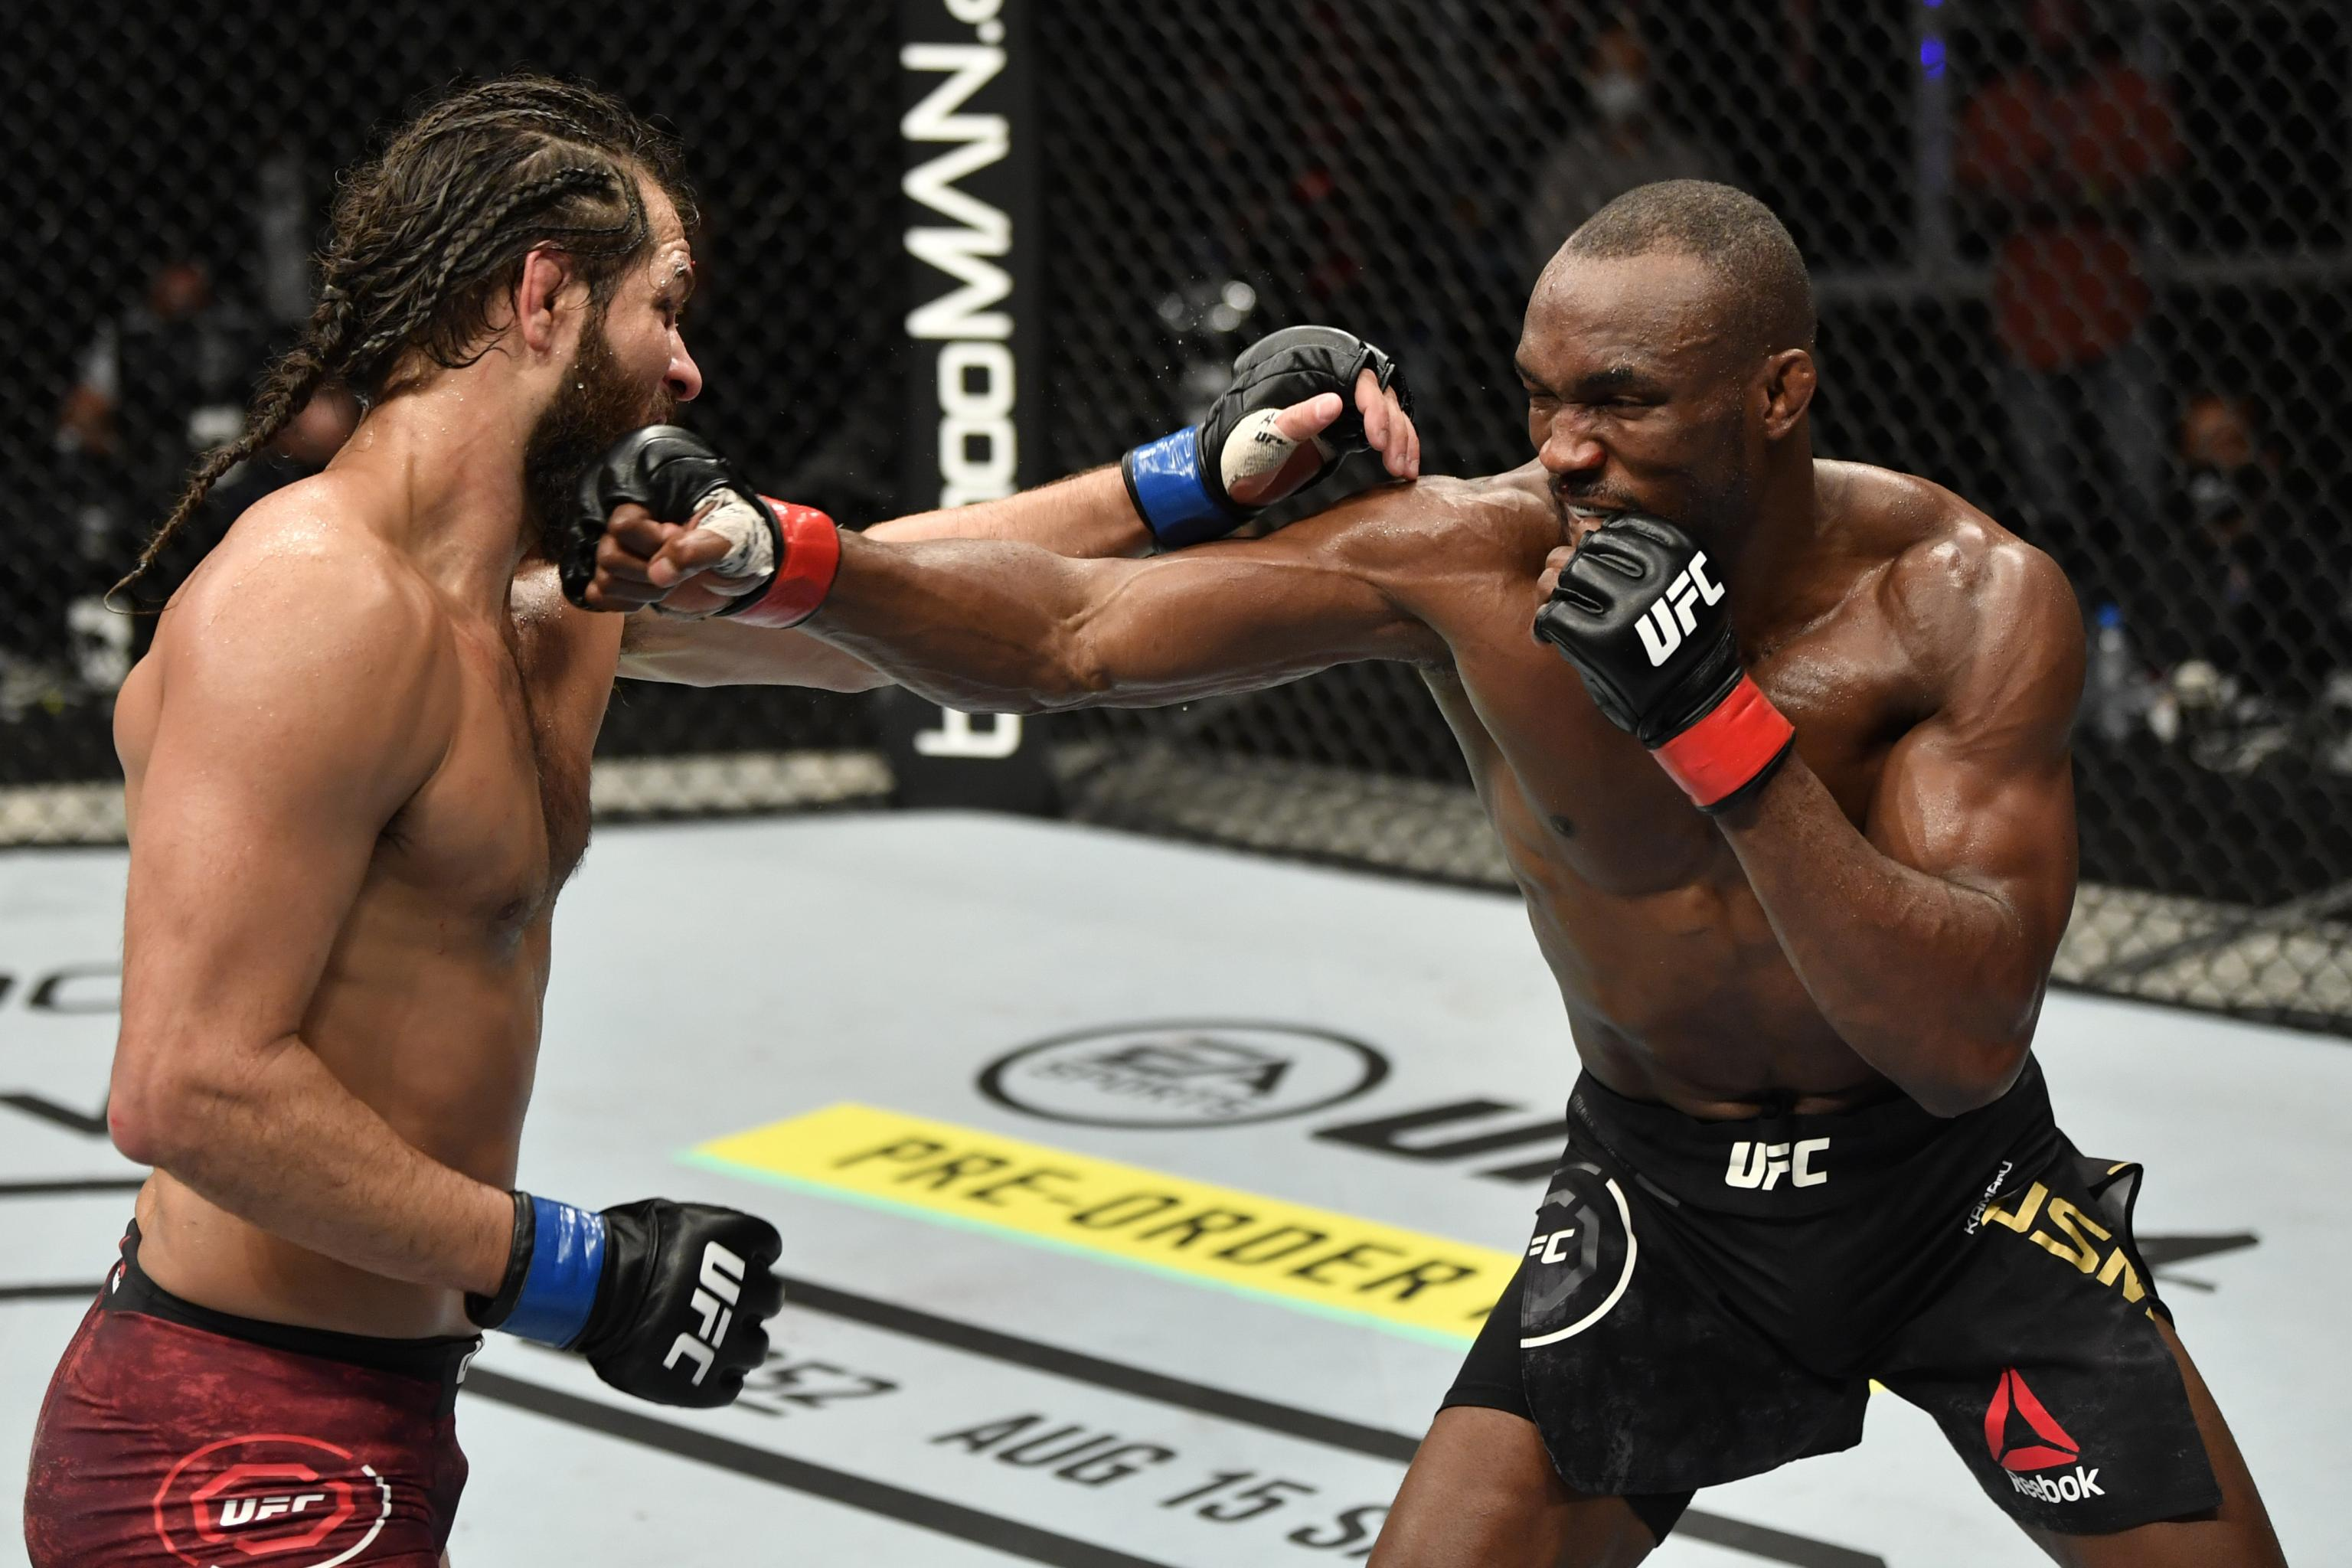 Ufc 251 Results Predicting Next Fights For Volkanovski Yan And Biggest Winners Bleacher Report Latest News Videos And Highlights